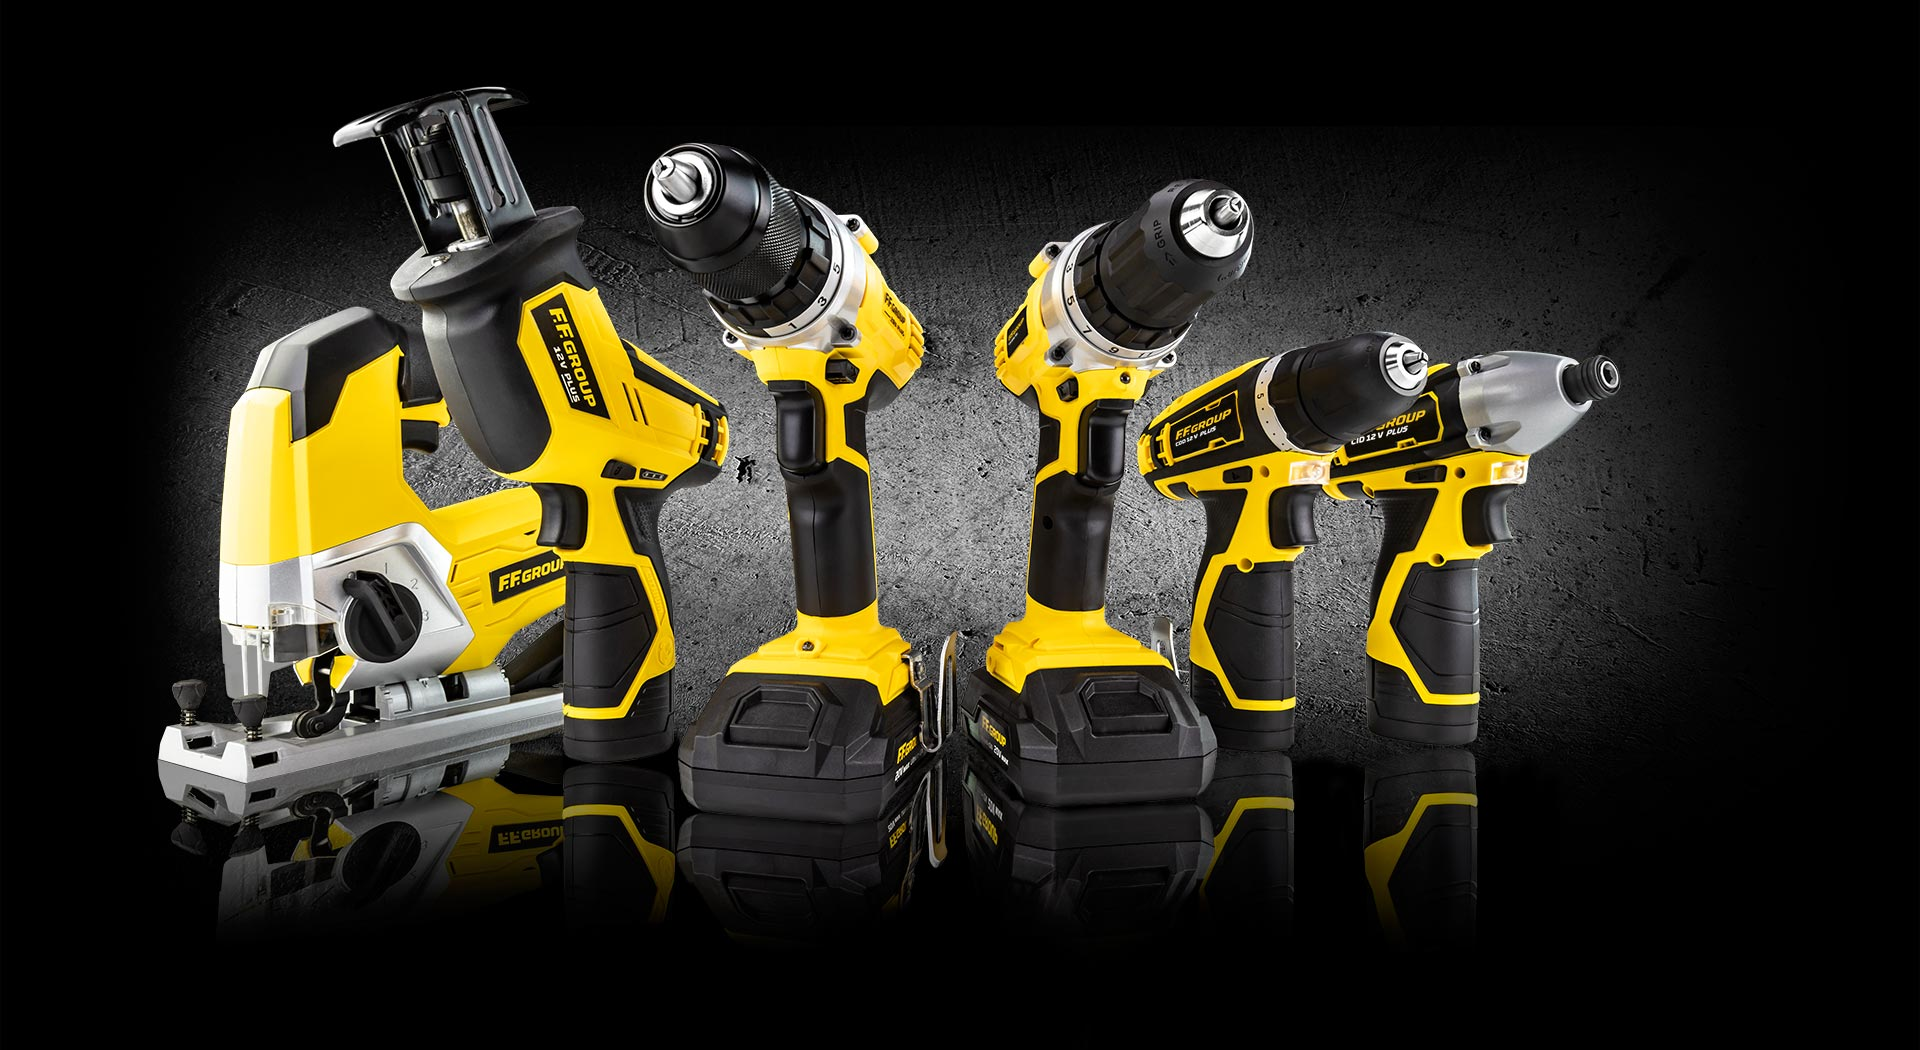 ffgroup-cordless-power-tools